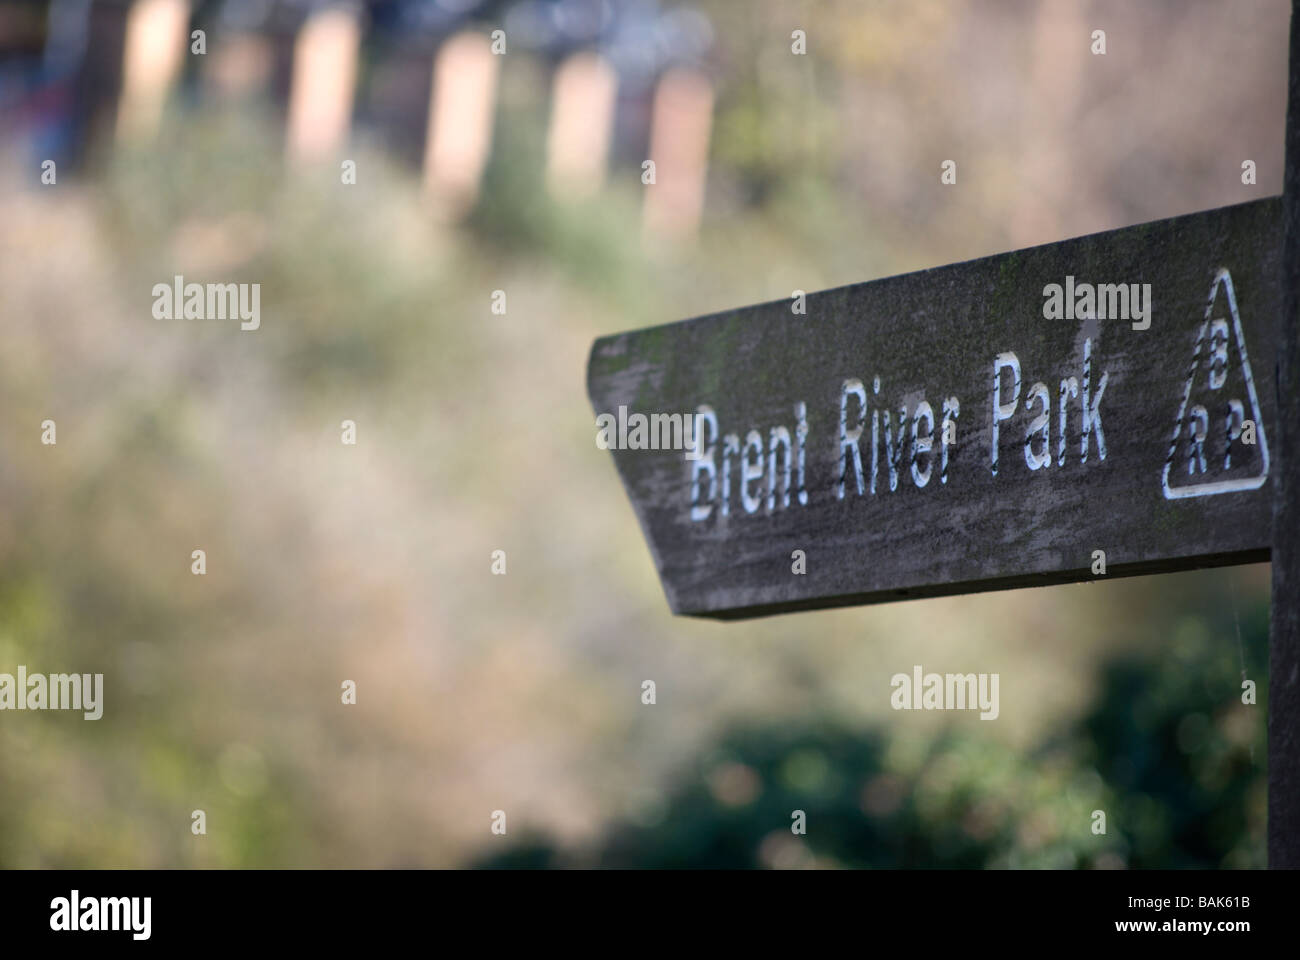 weathered left pointing wooden sign for a walking route to brent river park, west london, england - Stock Image